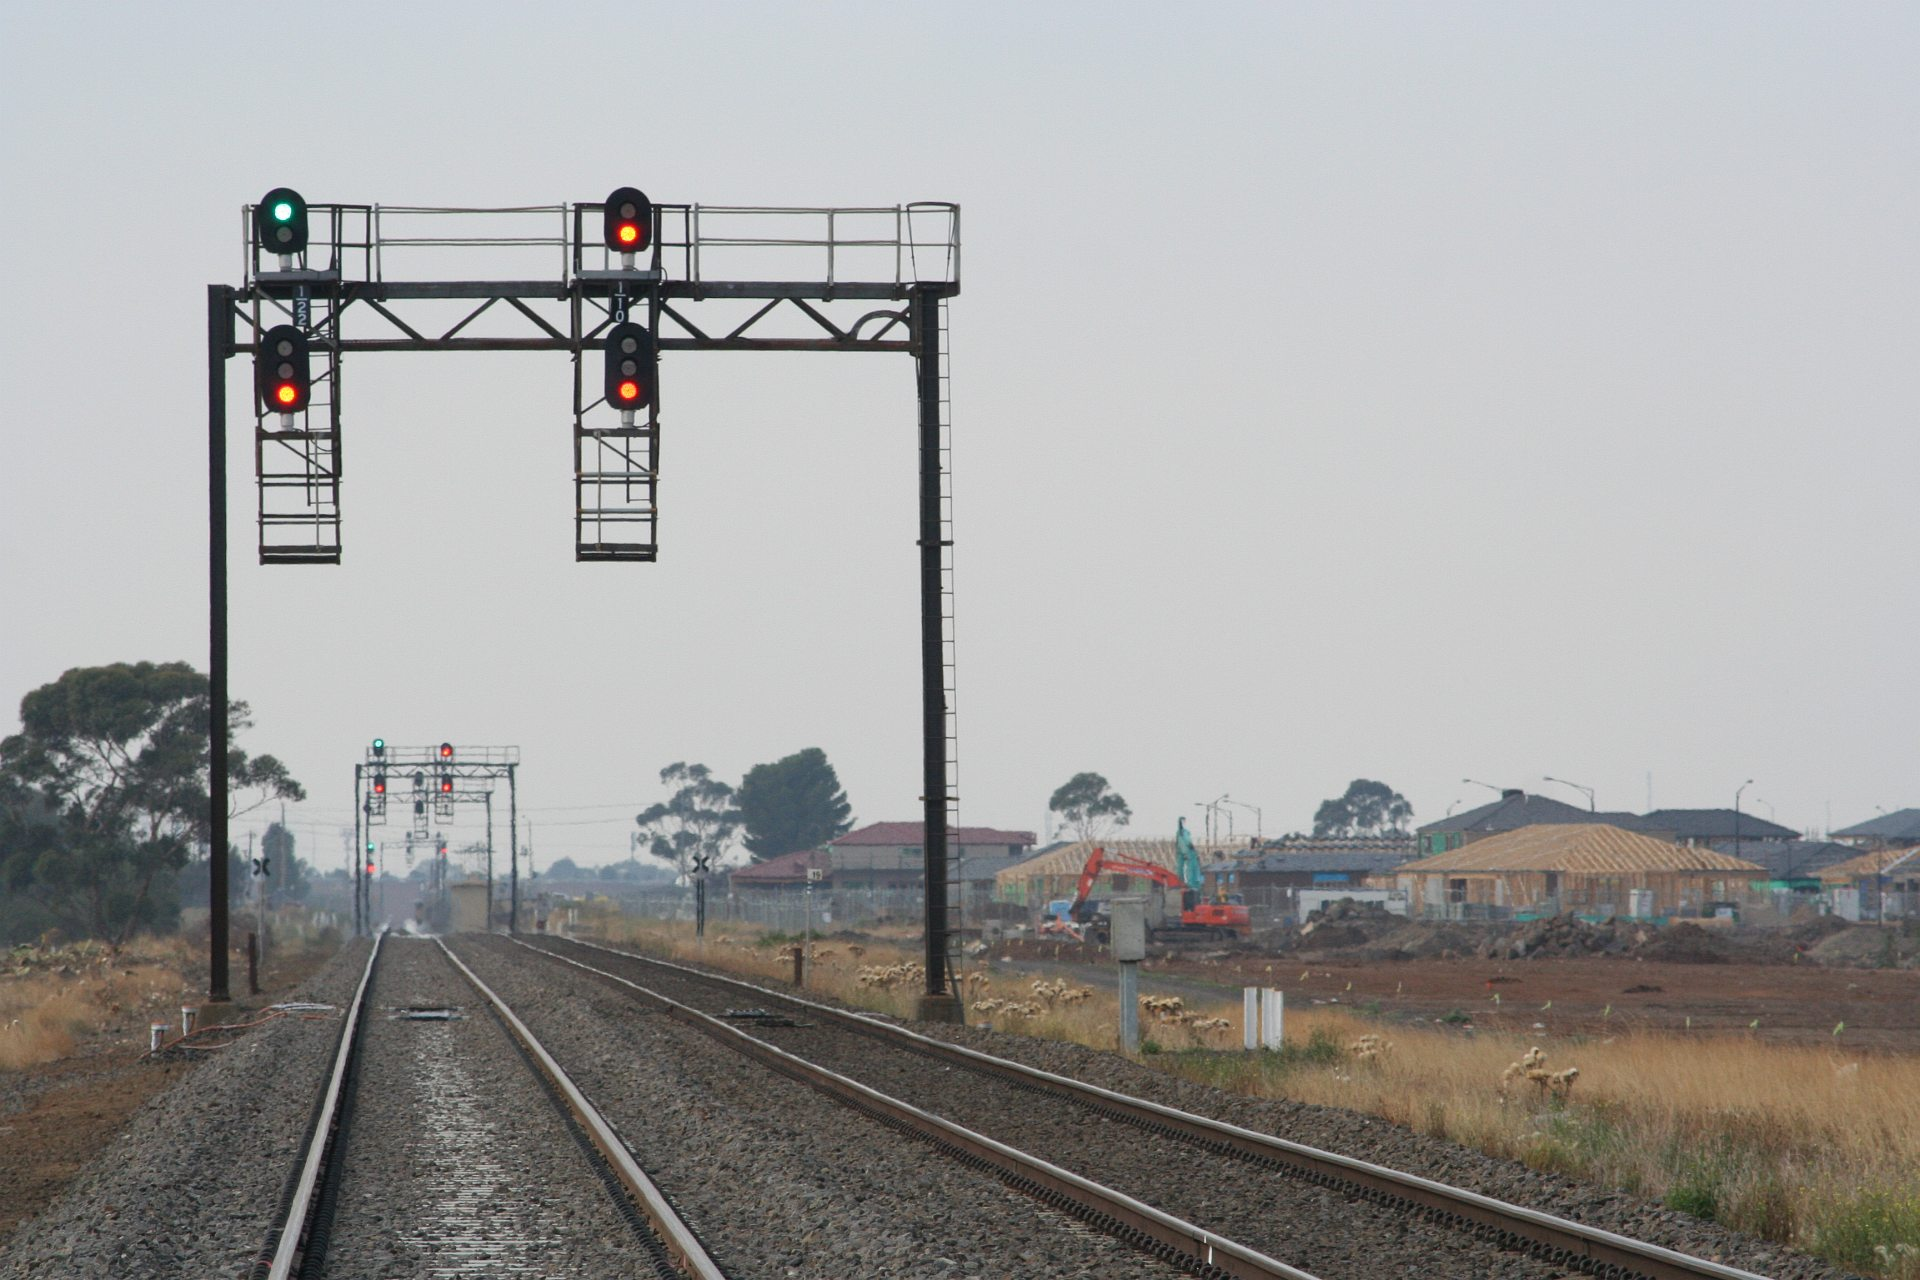 Rail Geelong Gallery Signals 1 22 And 1 10 For Up Trains Approaching Deer Park